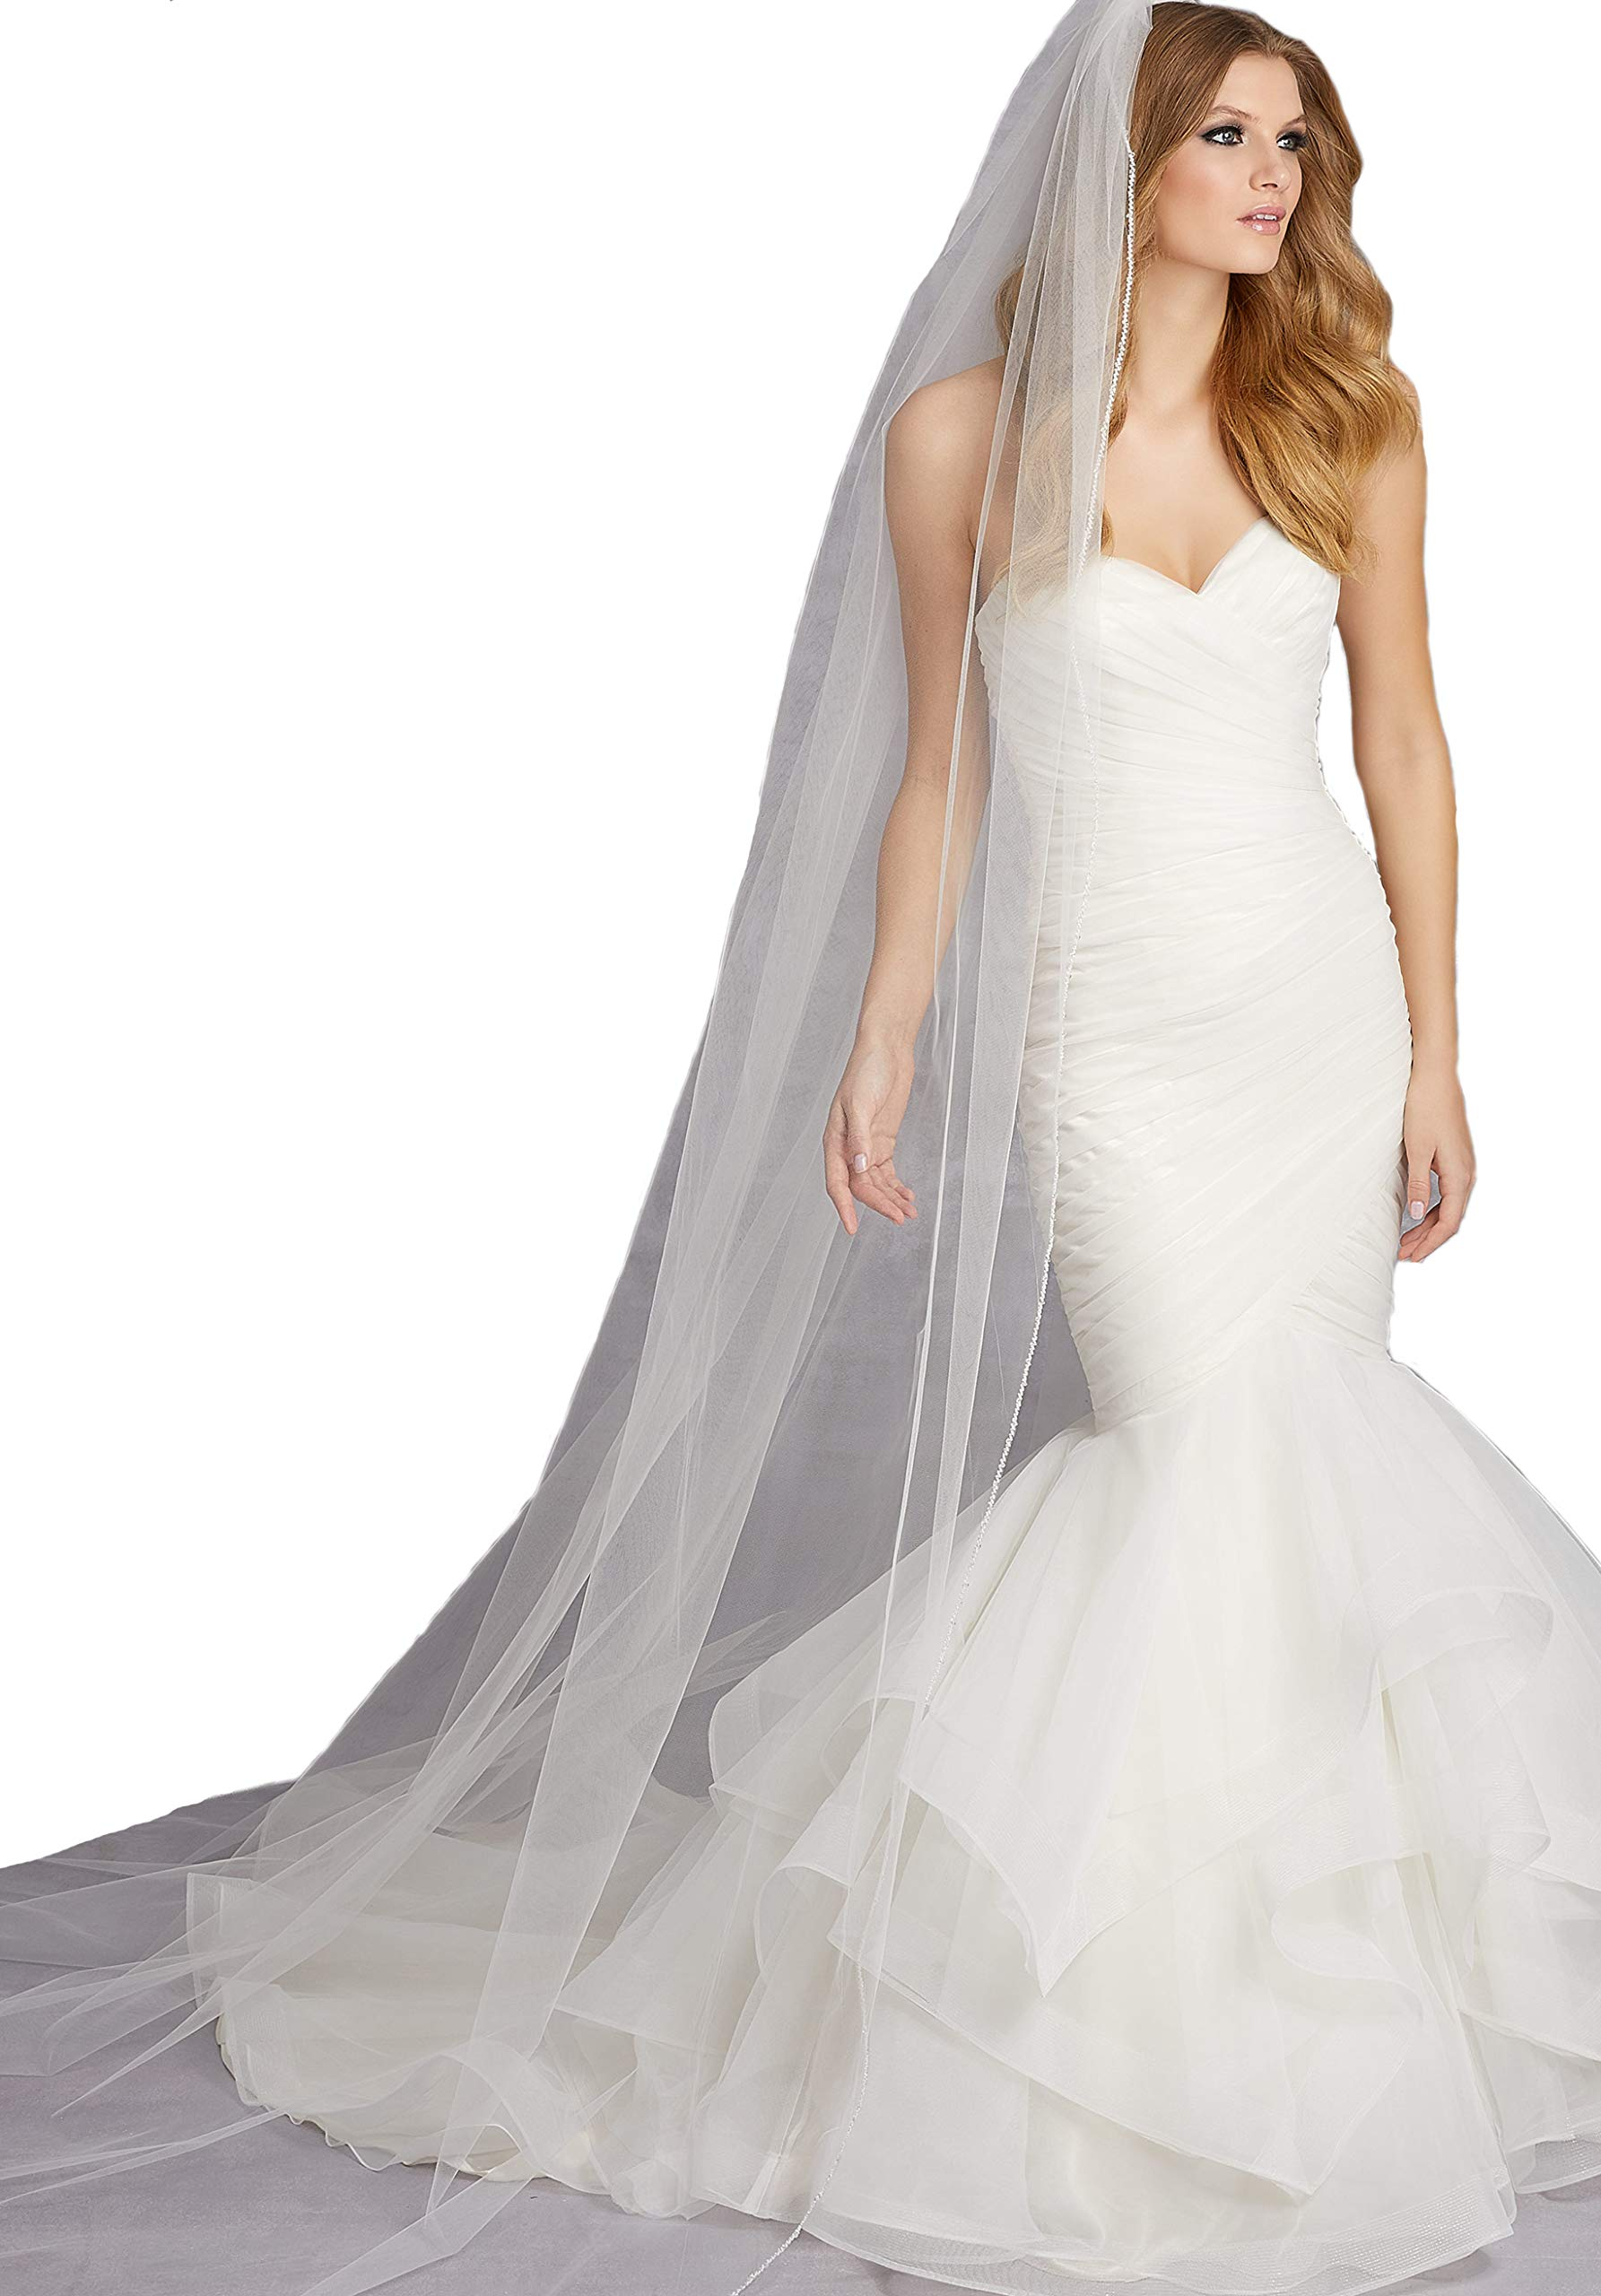 Passat Diamond White Single-Tier 3M Cathedral Veil Edged with Clear Beads and Crystals VL-1013